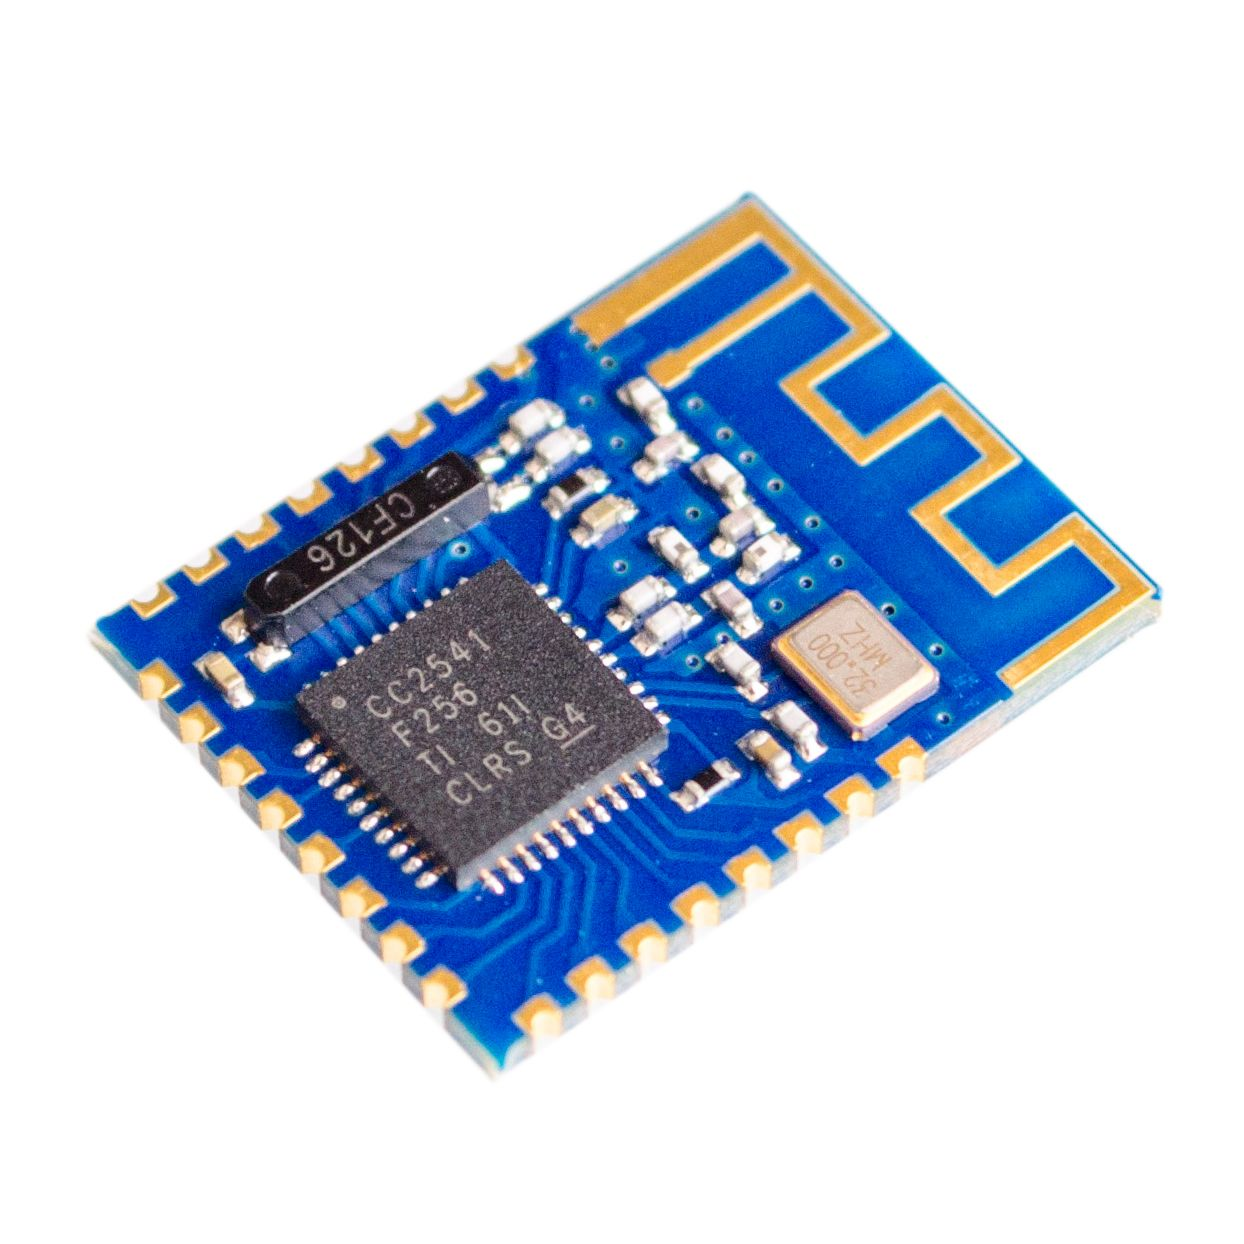 JDY-08 BLE Bluetooth 4.0 Uart Transceiver Module CC2541 Central Switching Wireless Module iBeacon